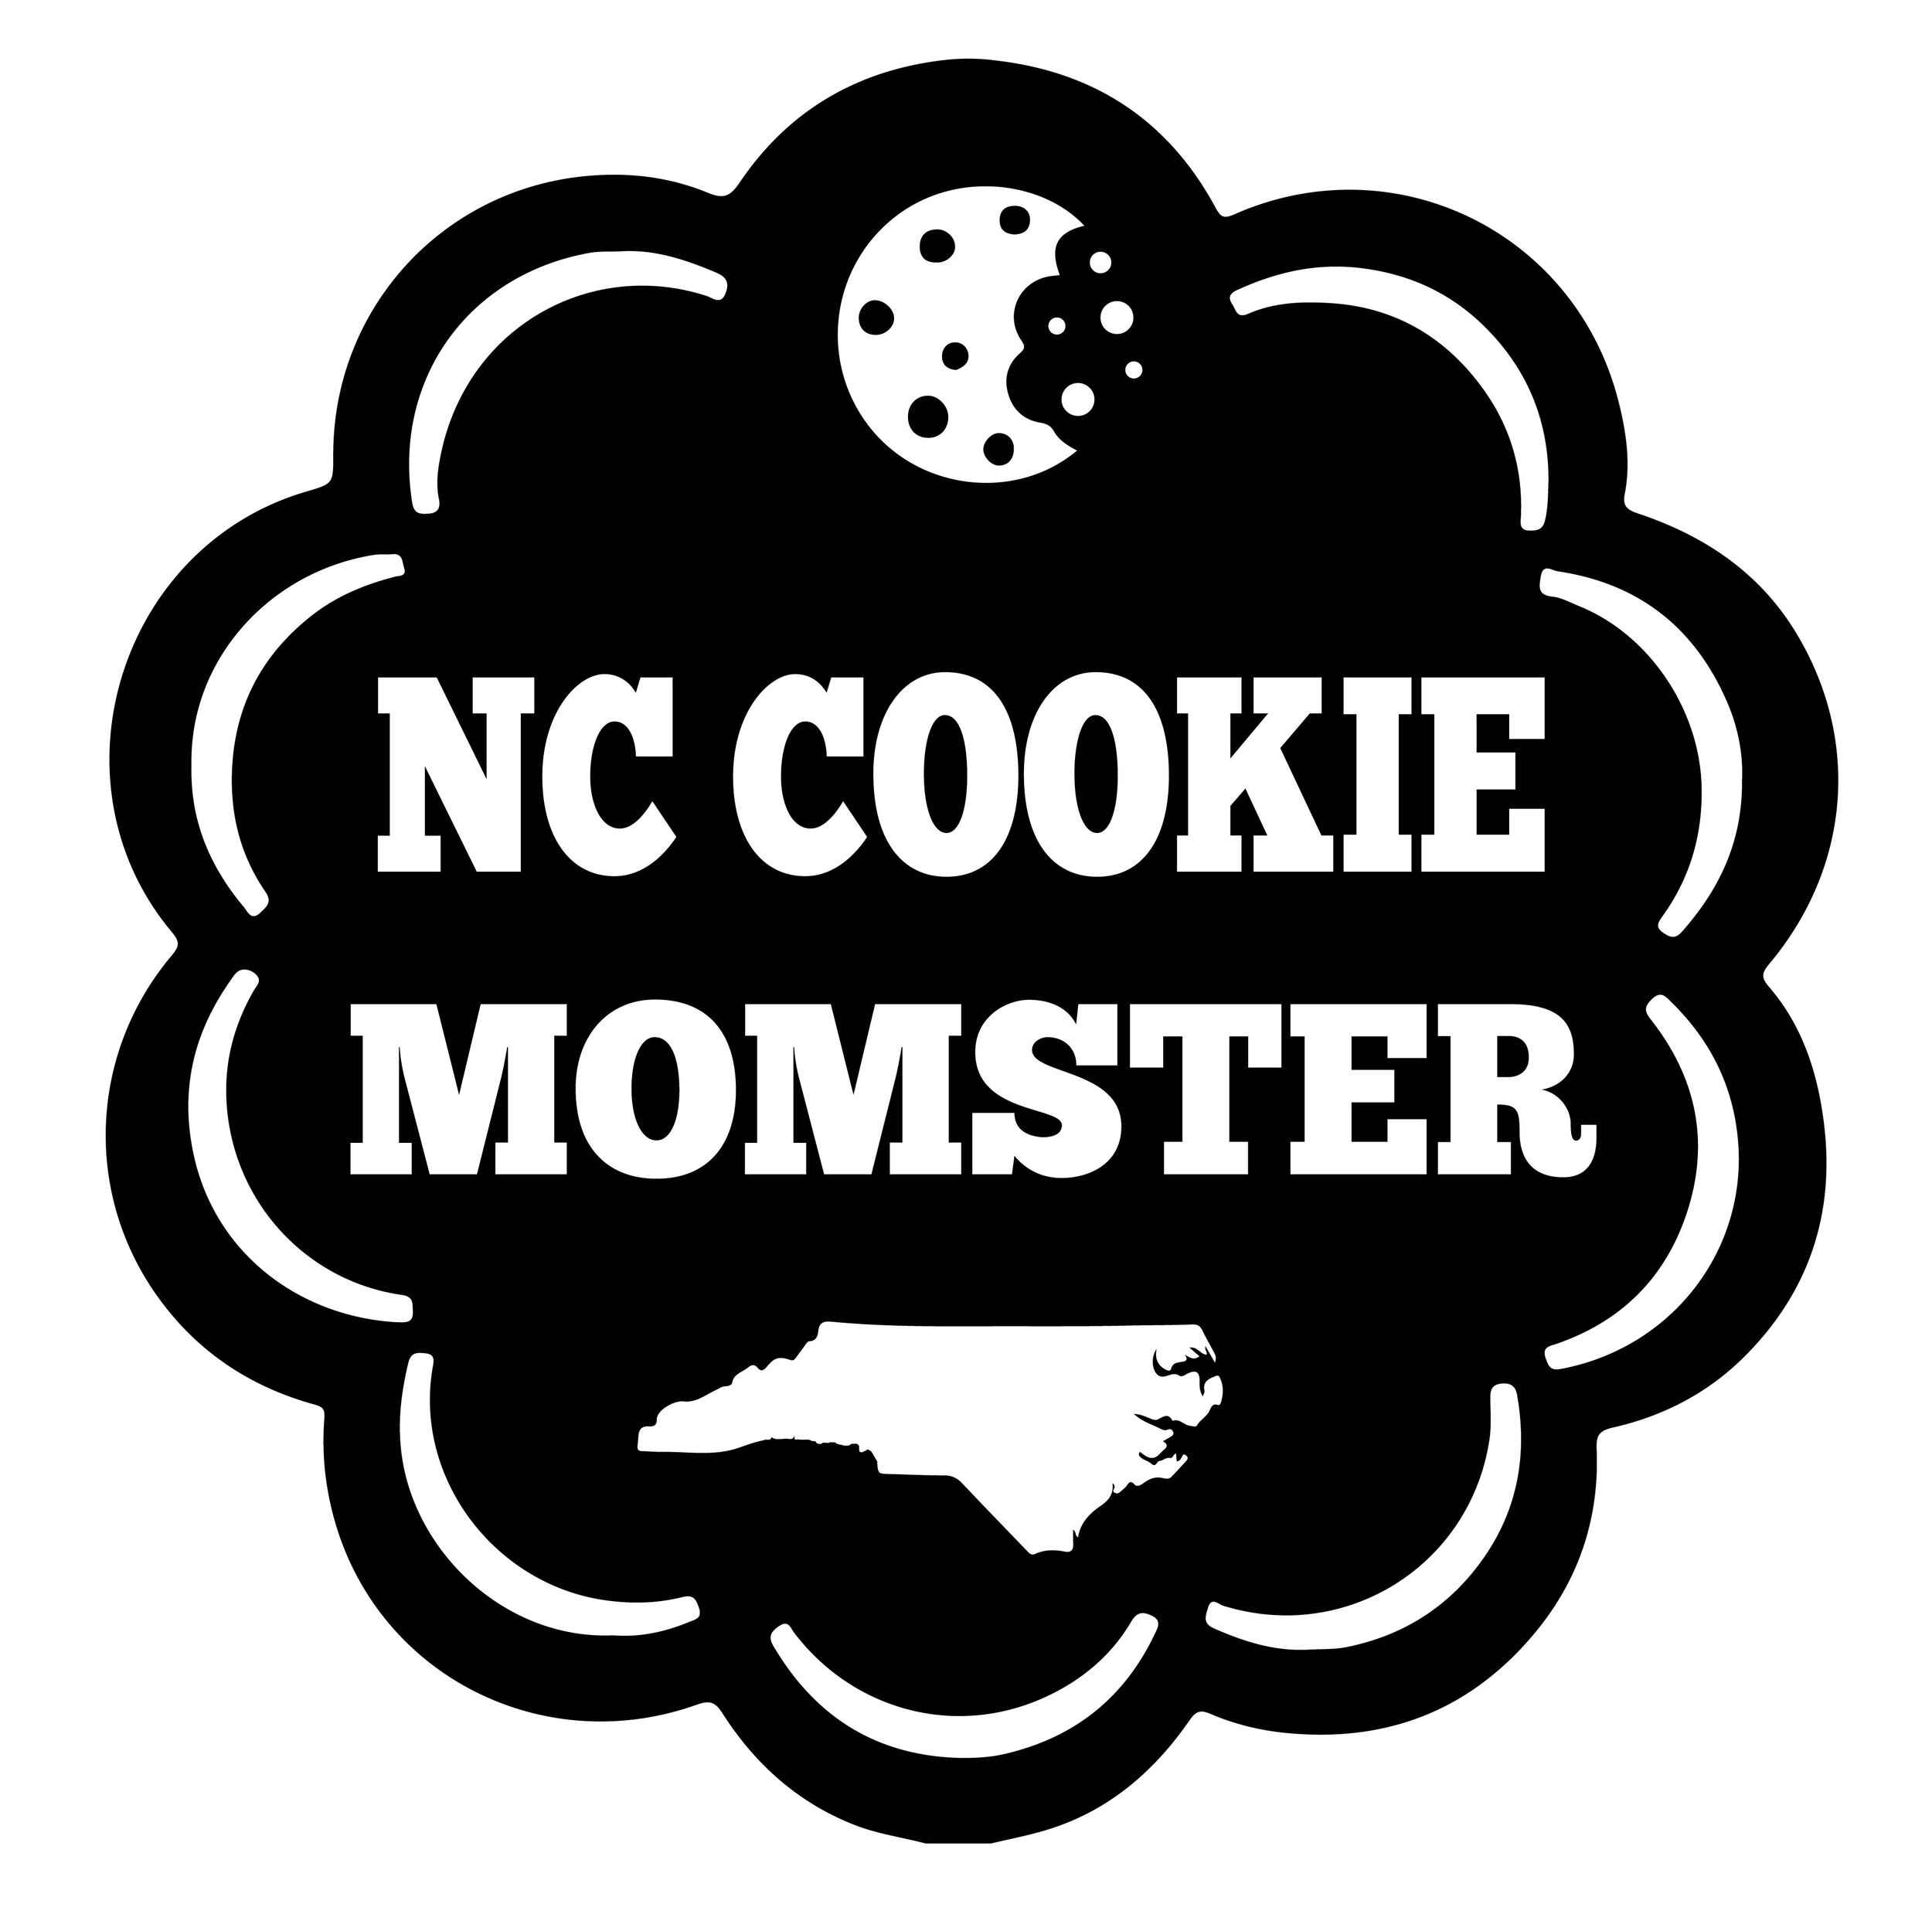 NC Cookie Momster